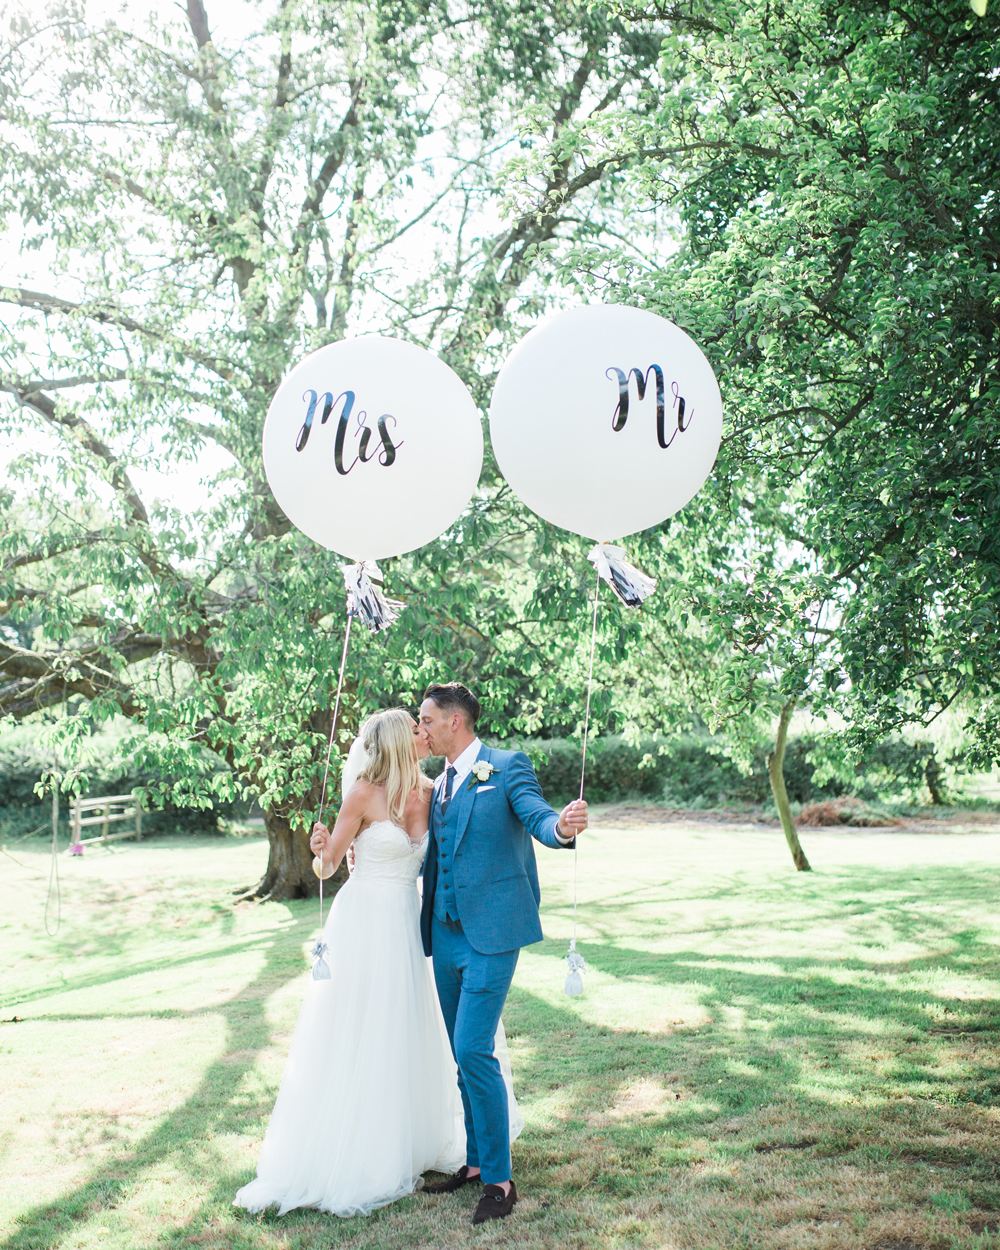 bride and groom holding white balloons with Mr and Mrs written